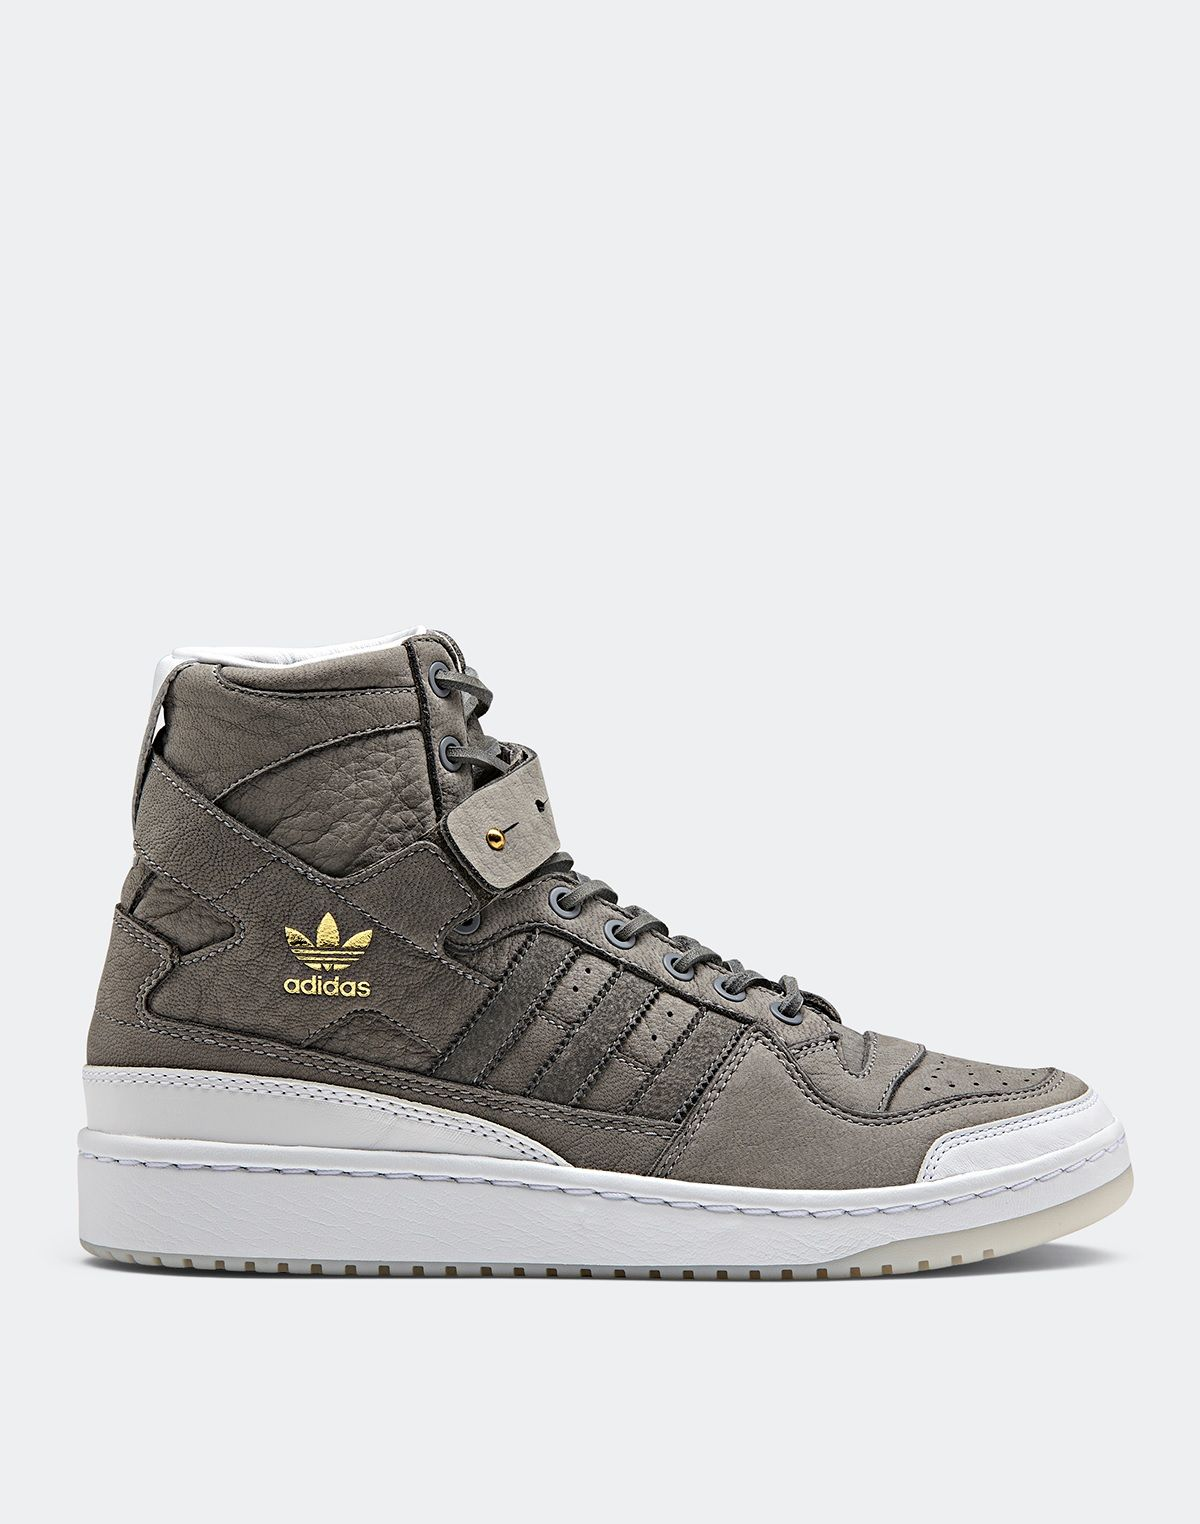 6851d946919 adidas Originals Forum High Adidas Basketball Shoes